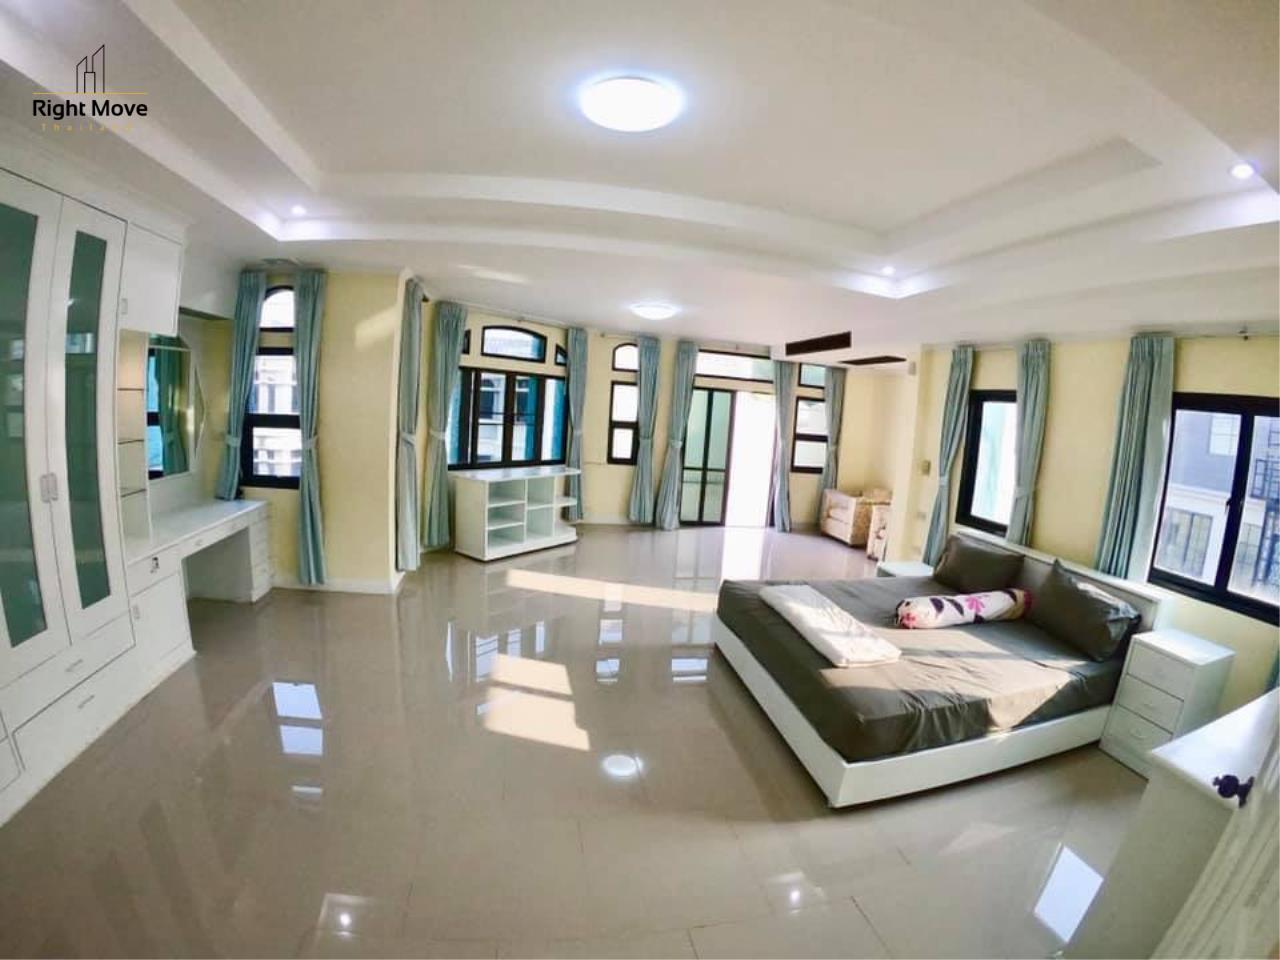 Right Move Thailand Agency's HR 695 Townhouse For Sale 19,900,000 THB 3 Bedrooms 380 Sqm 11